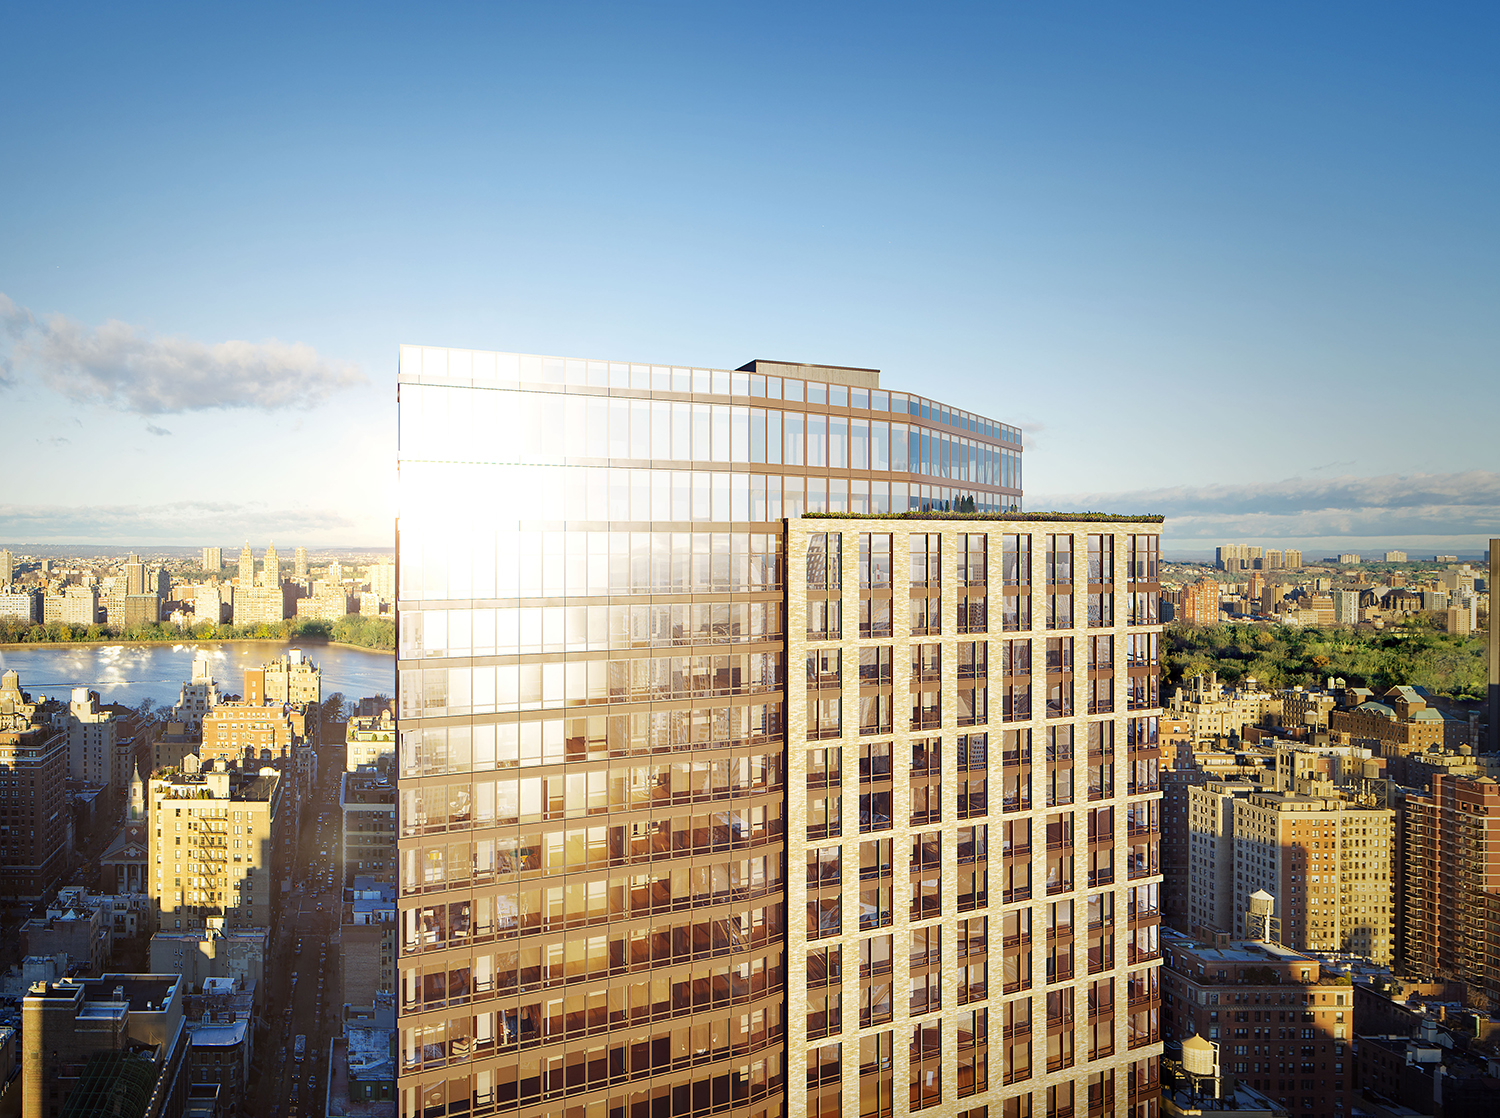 Rendering of the Easton, 205 East 92nd Street. Designed by Handel Architects. Rendering by Moso Studio